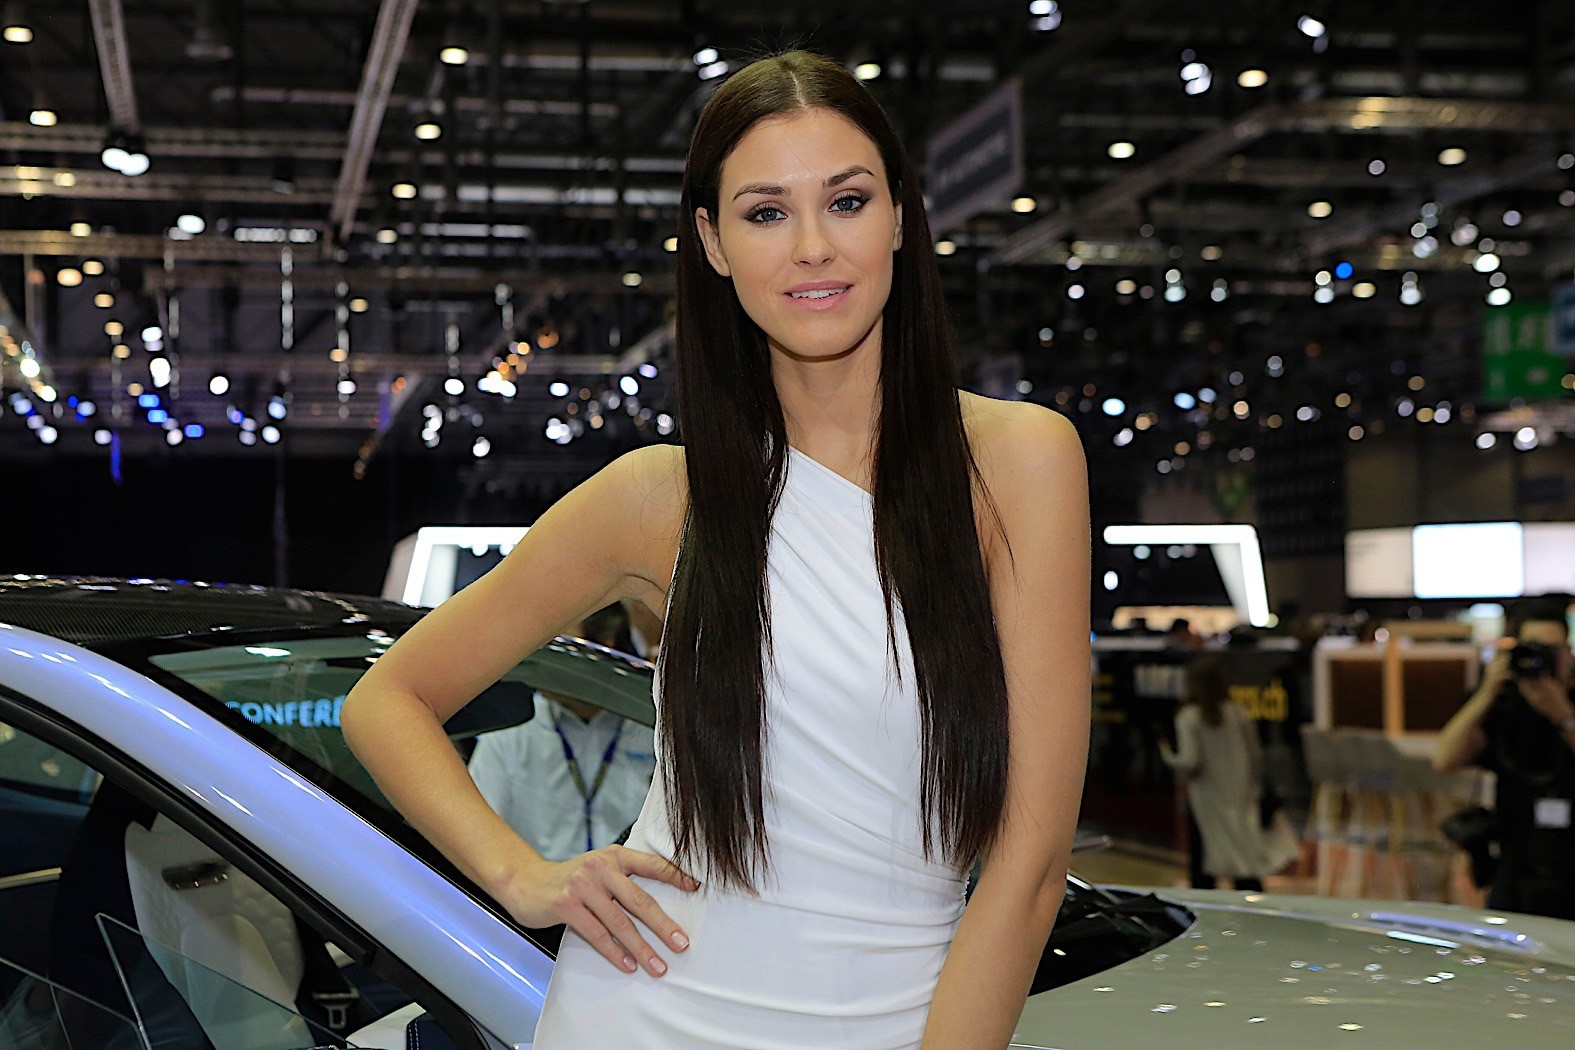 2018 Geneva Motor Show Booth Girls Survive the Pointless ...